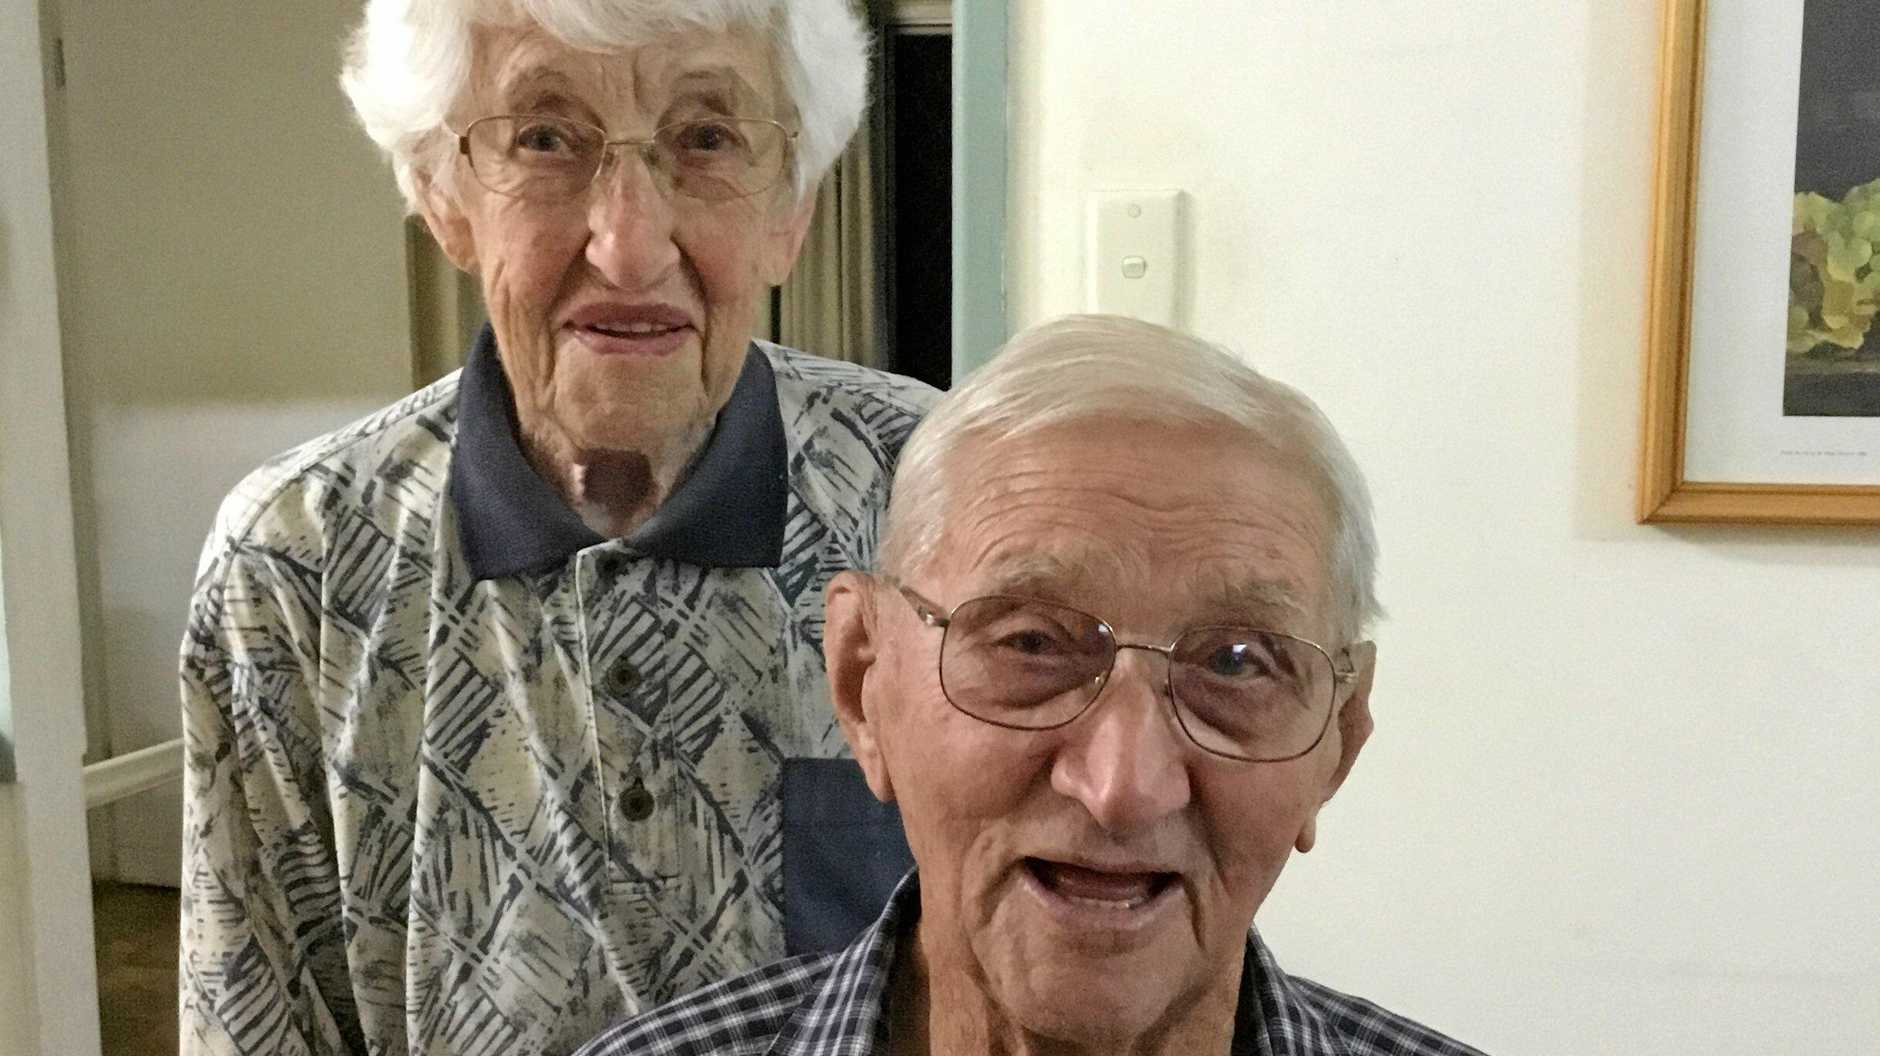 COMMITMENT: Jean and Herbert (Bob) Little celebrate their 70th wedding anniversary together on February 5, 2019.